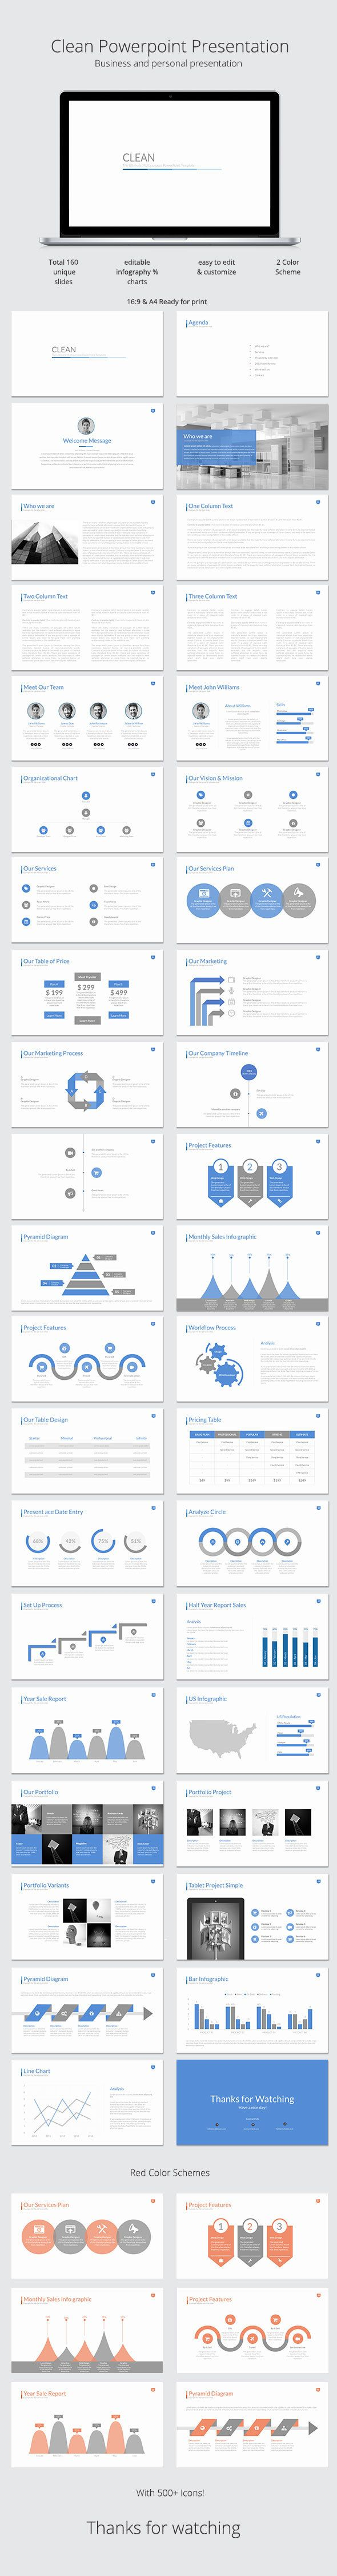 Coolmathgamesus  Picturesque  Ideas About Powerpoint Presentations On Pinterest With Excellent Clean Powerpoint Template With Divine Circular Arrows Powerpoint Also Life Cycle Of A Chicken Powerpoint In Addition Powerpoint Slide Masters And Writing A Thesis Statement Powerpoint As Well As Puzzle Images For Powerpoint Additionally Powerpoints For Free From Pinterestcom With Coolmathgamesus  Excellent  Ideas About Powerpoint Presentations On Pinterest With Divine Clean Powerpoint Template And Picturesque Circular Arrows Powerpoint Also Life Cycle Of A Chicken Powerpoint In Addition Powerpoint Slide Masters From Pinterestcom